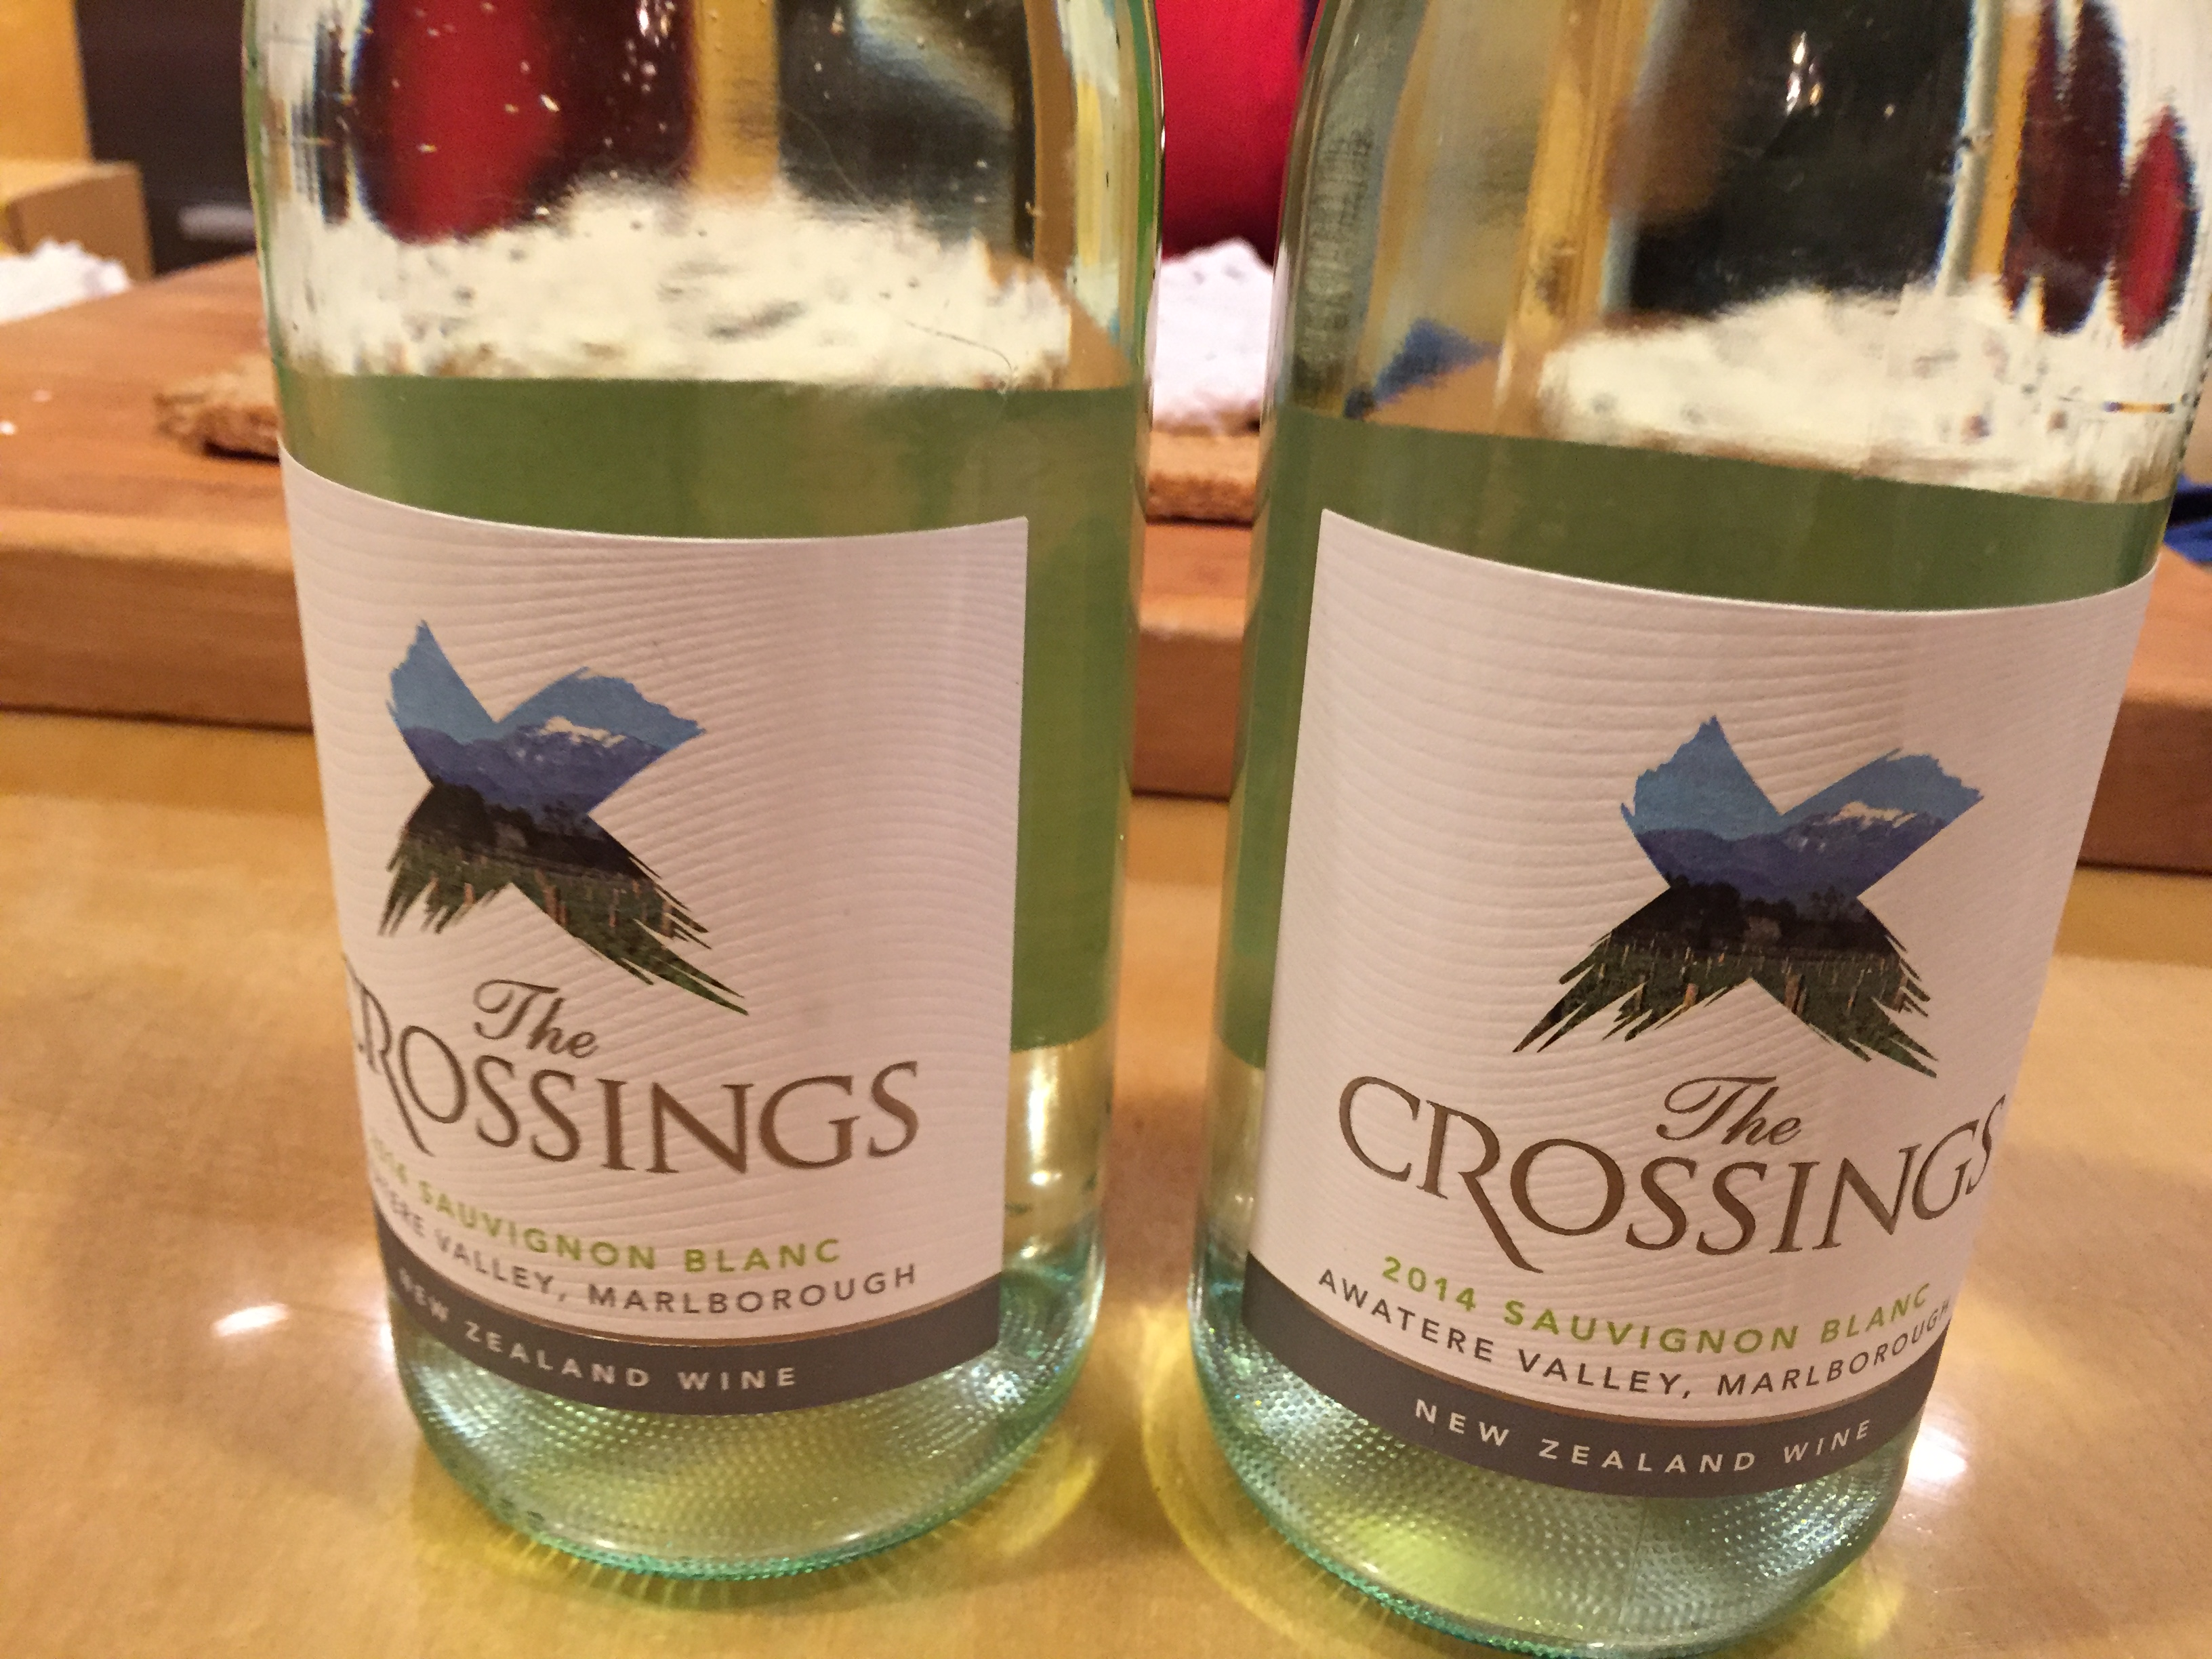 Two bottles of The Crossing white wine